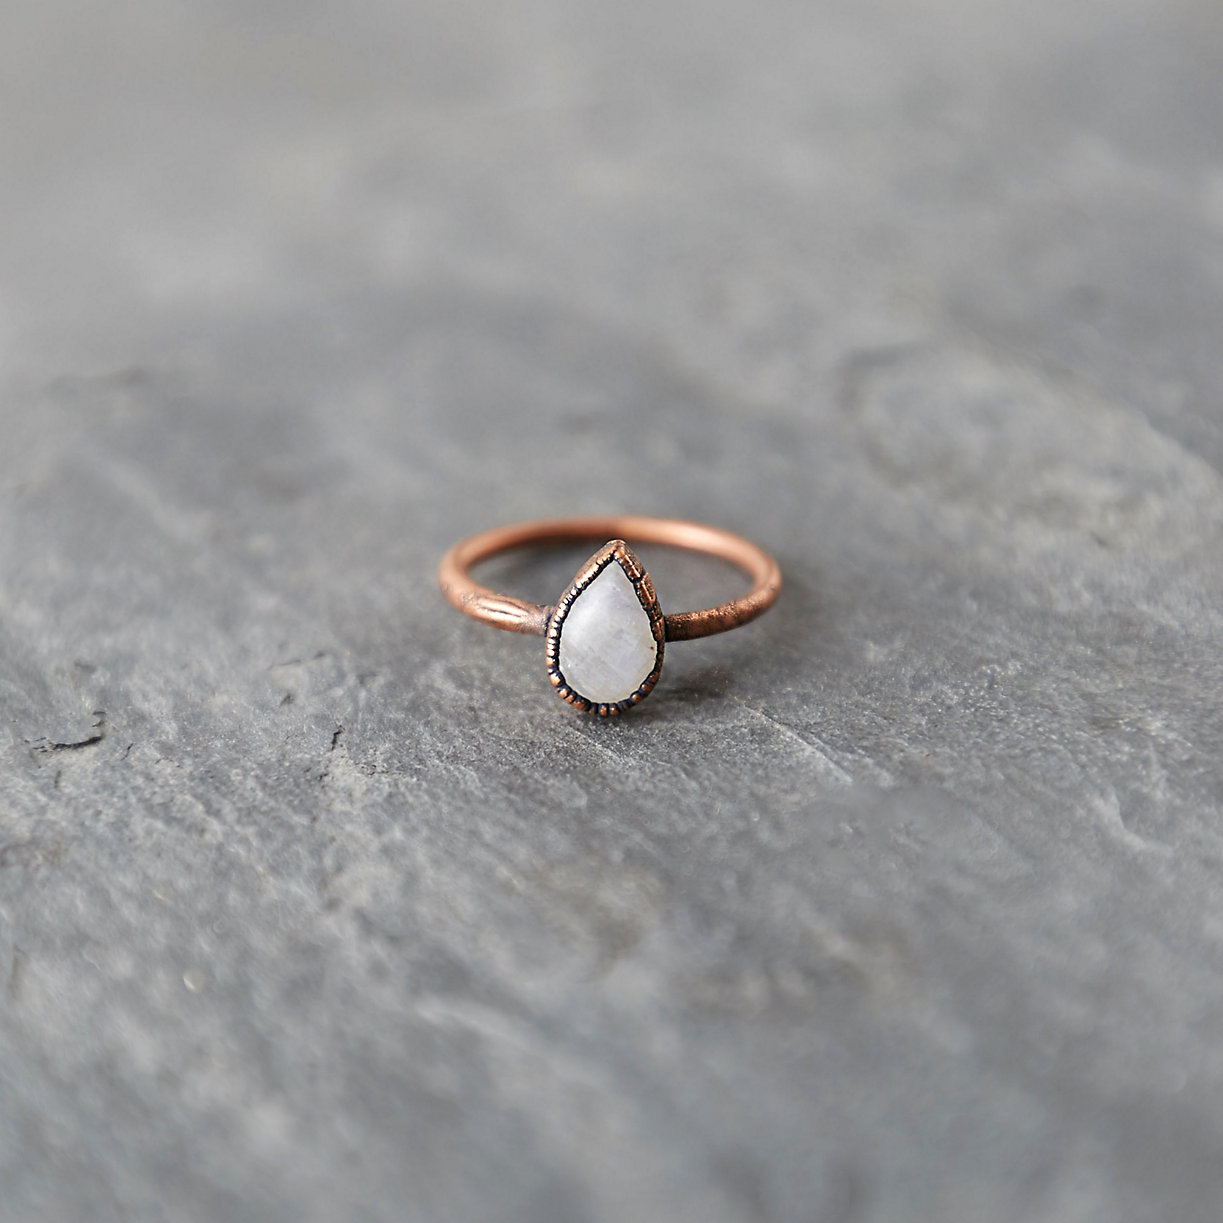 Moonstone Oval Ring Feng Shui Cures Amp Decor Accents